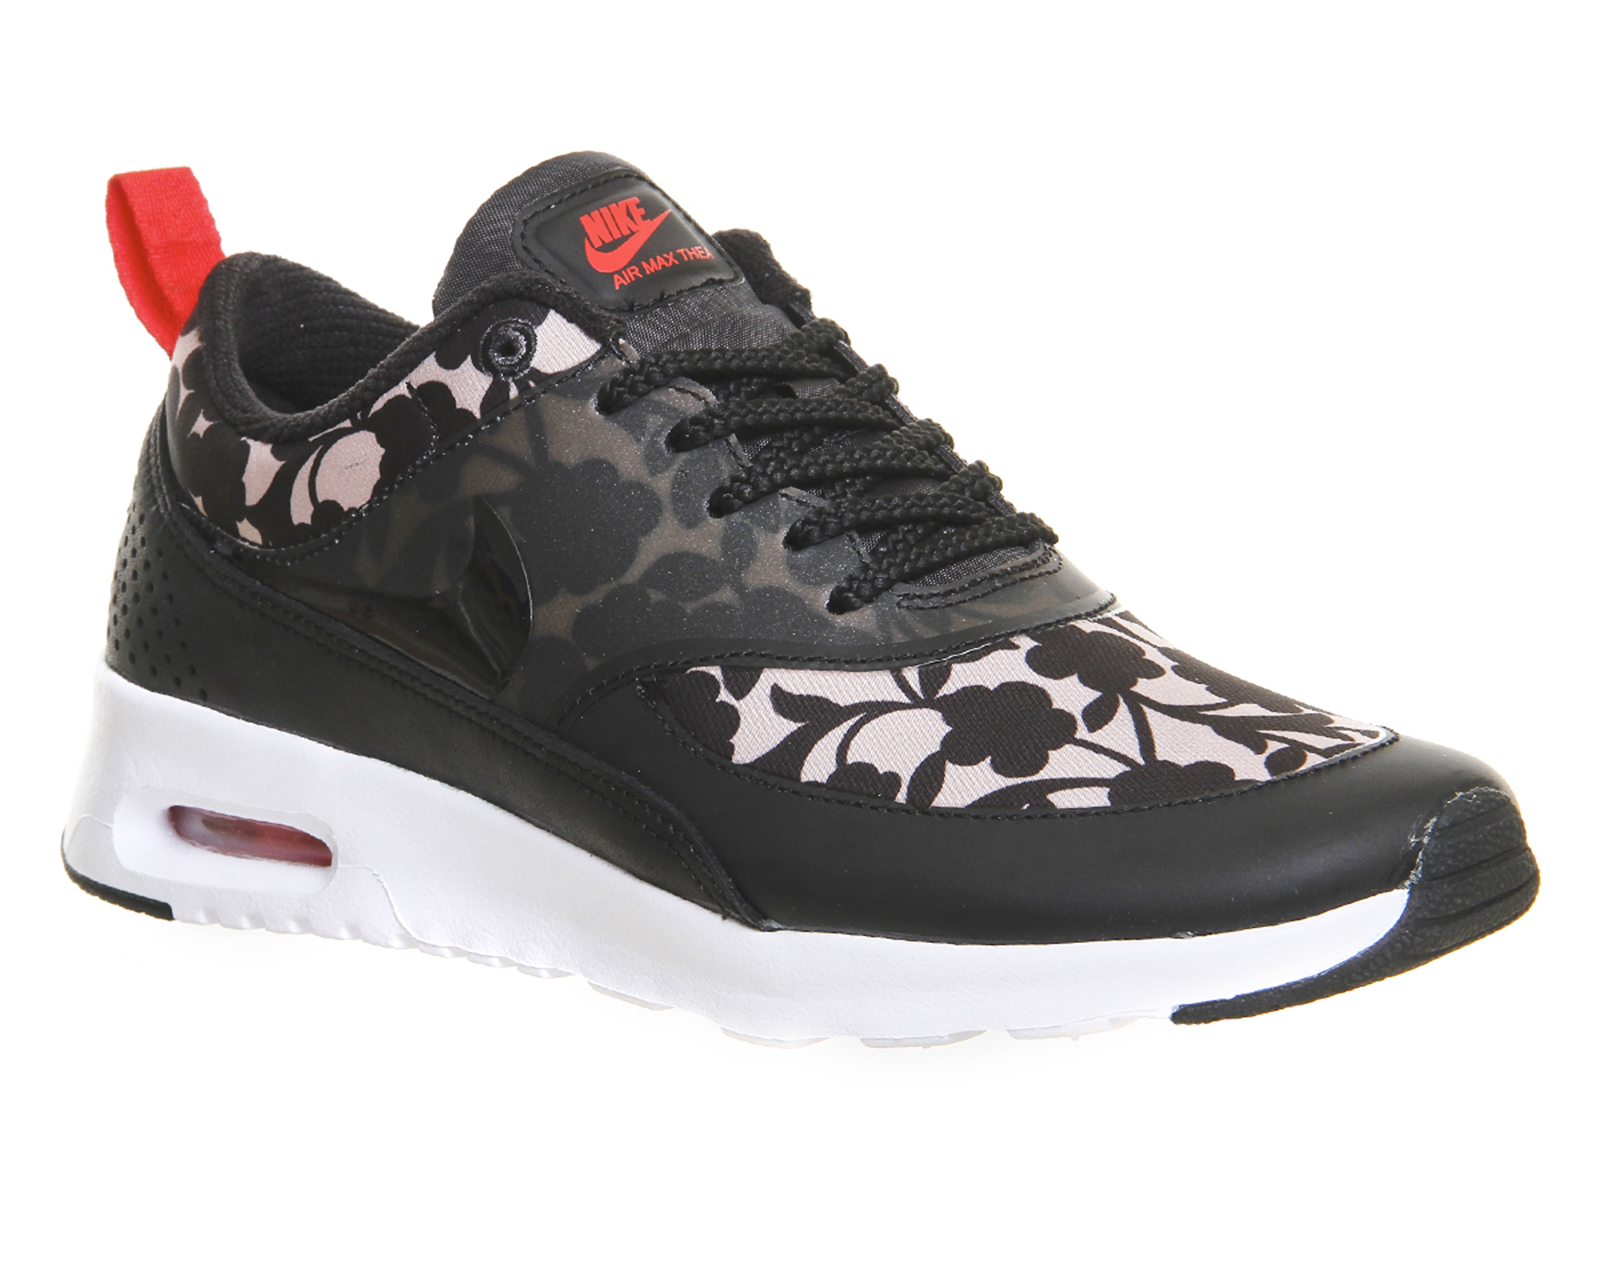 nike air max thea floral print low top sneakers in brown. Black Bedroom Furniture Sets. Home Design Ideas